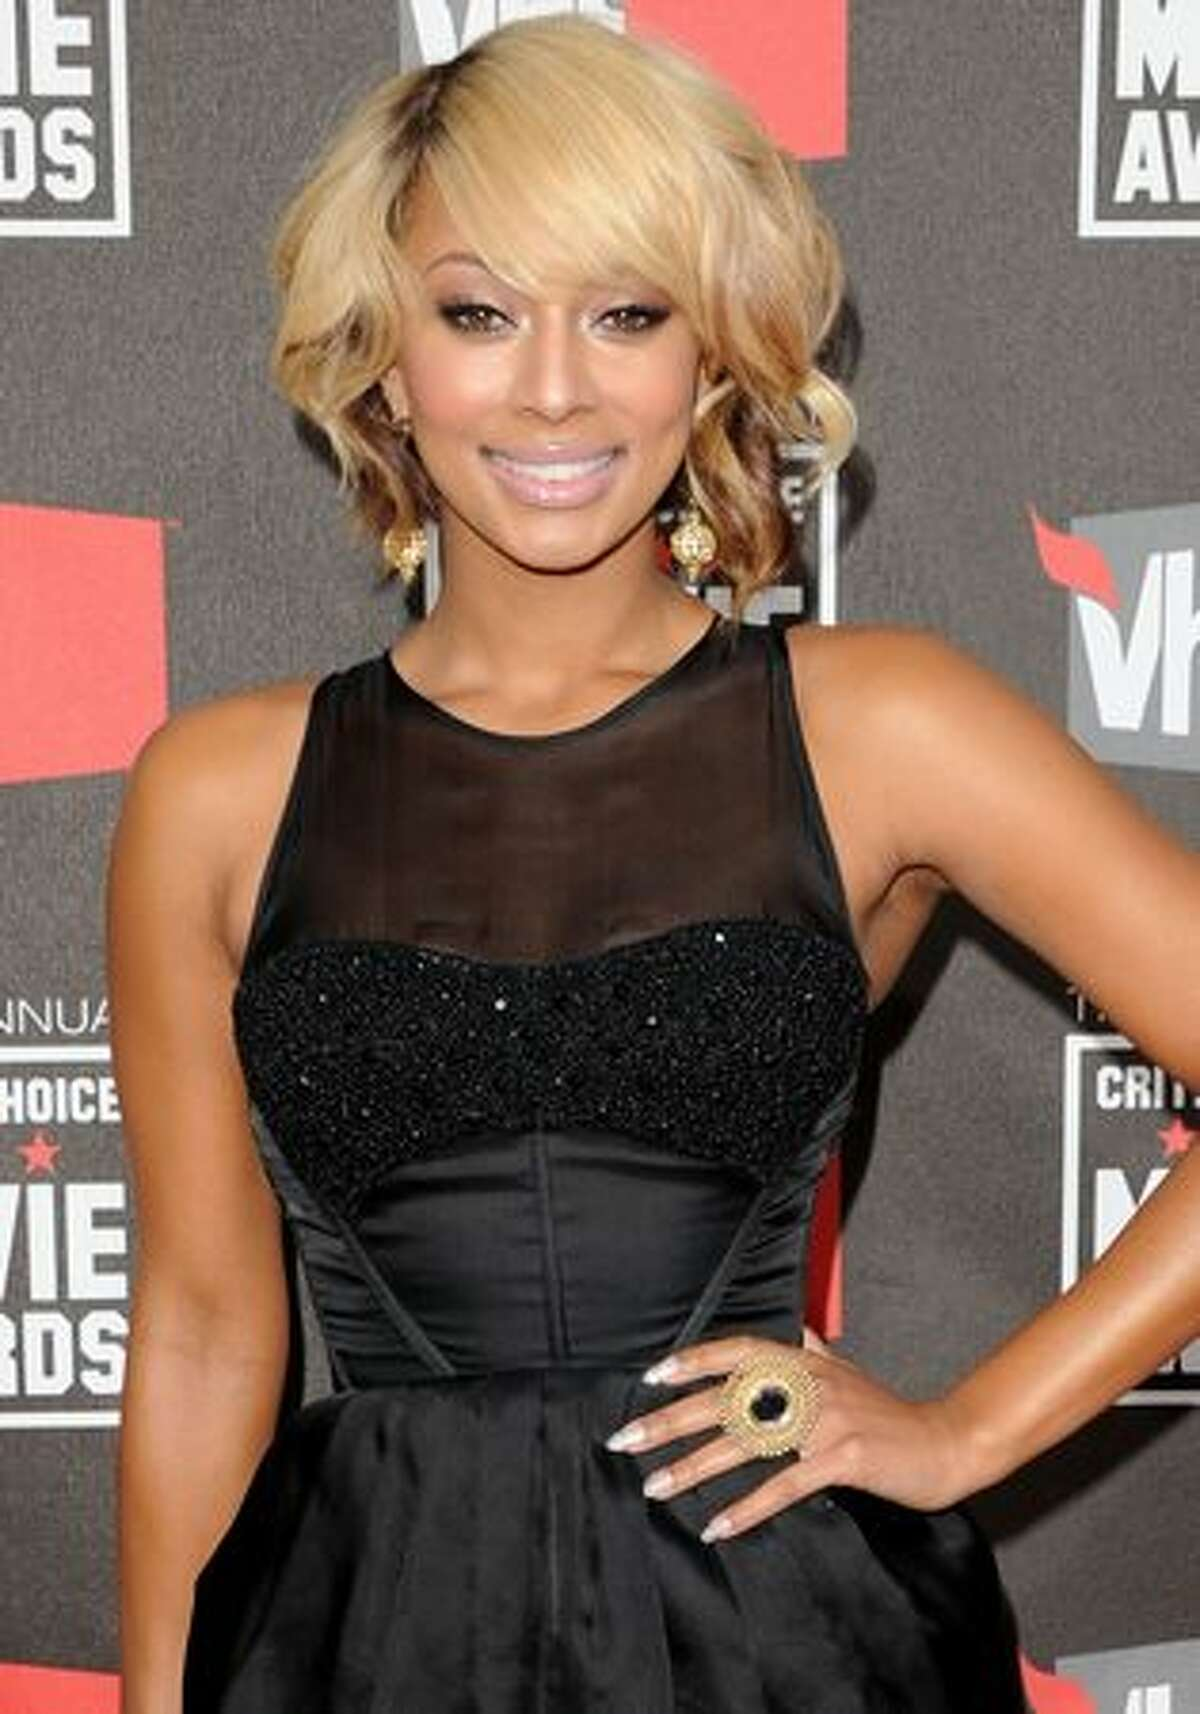 Singer Keri Hilson arrives at the 16th annual Critics' Choice Movie Awards at the Hollywood Palladium in Los Angeles on Friday, Jan. 14, 2011.